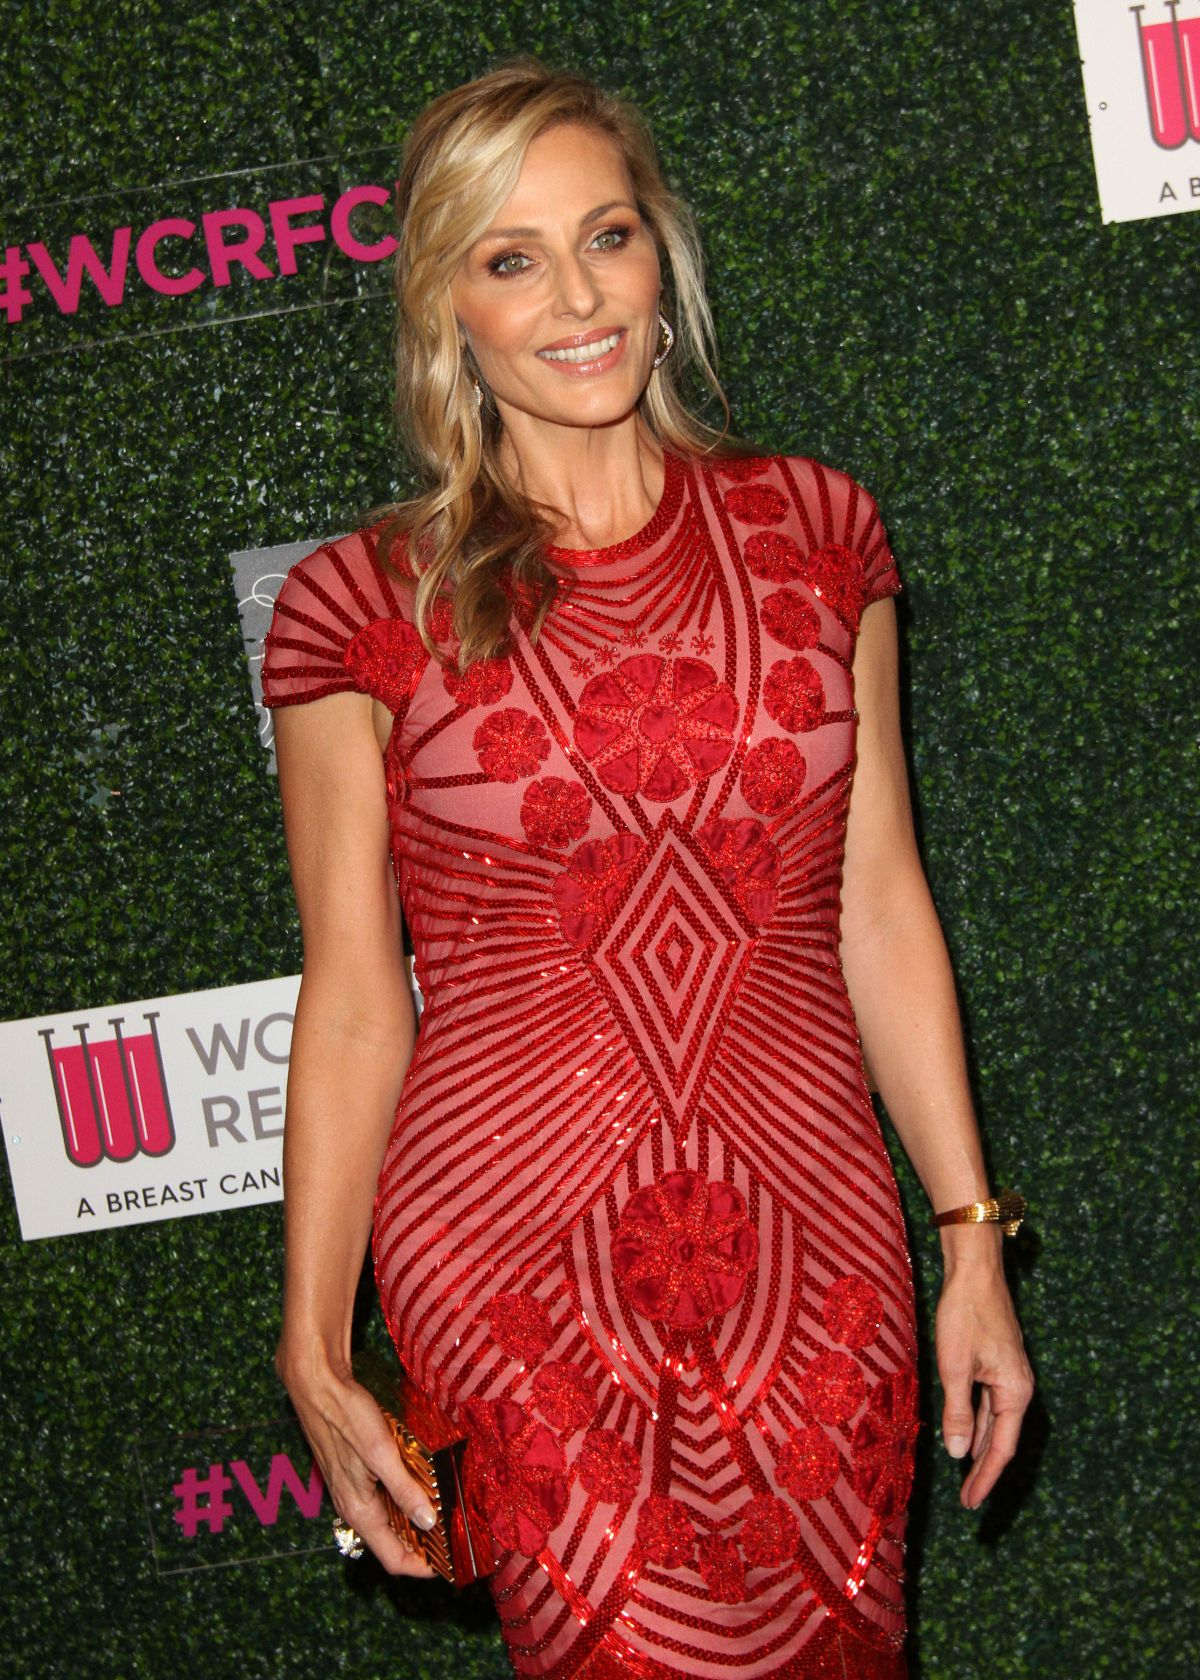 JAMIE TISCH at WCRF An Unforgettable Evening in Beverly Hills 02/16/2017